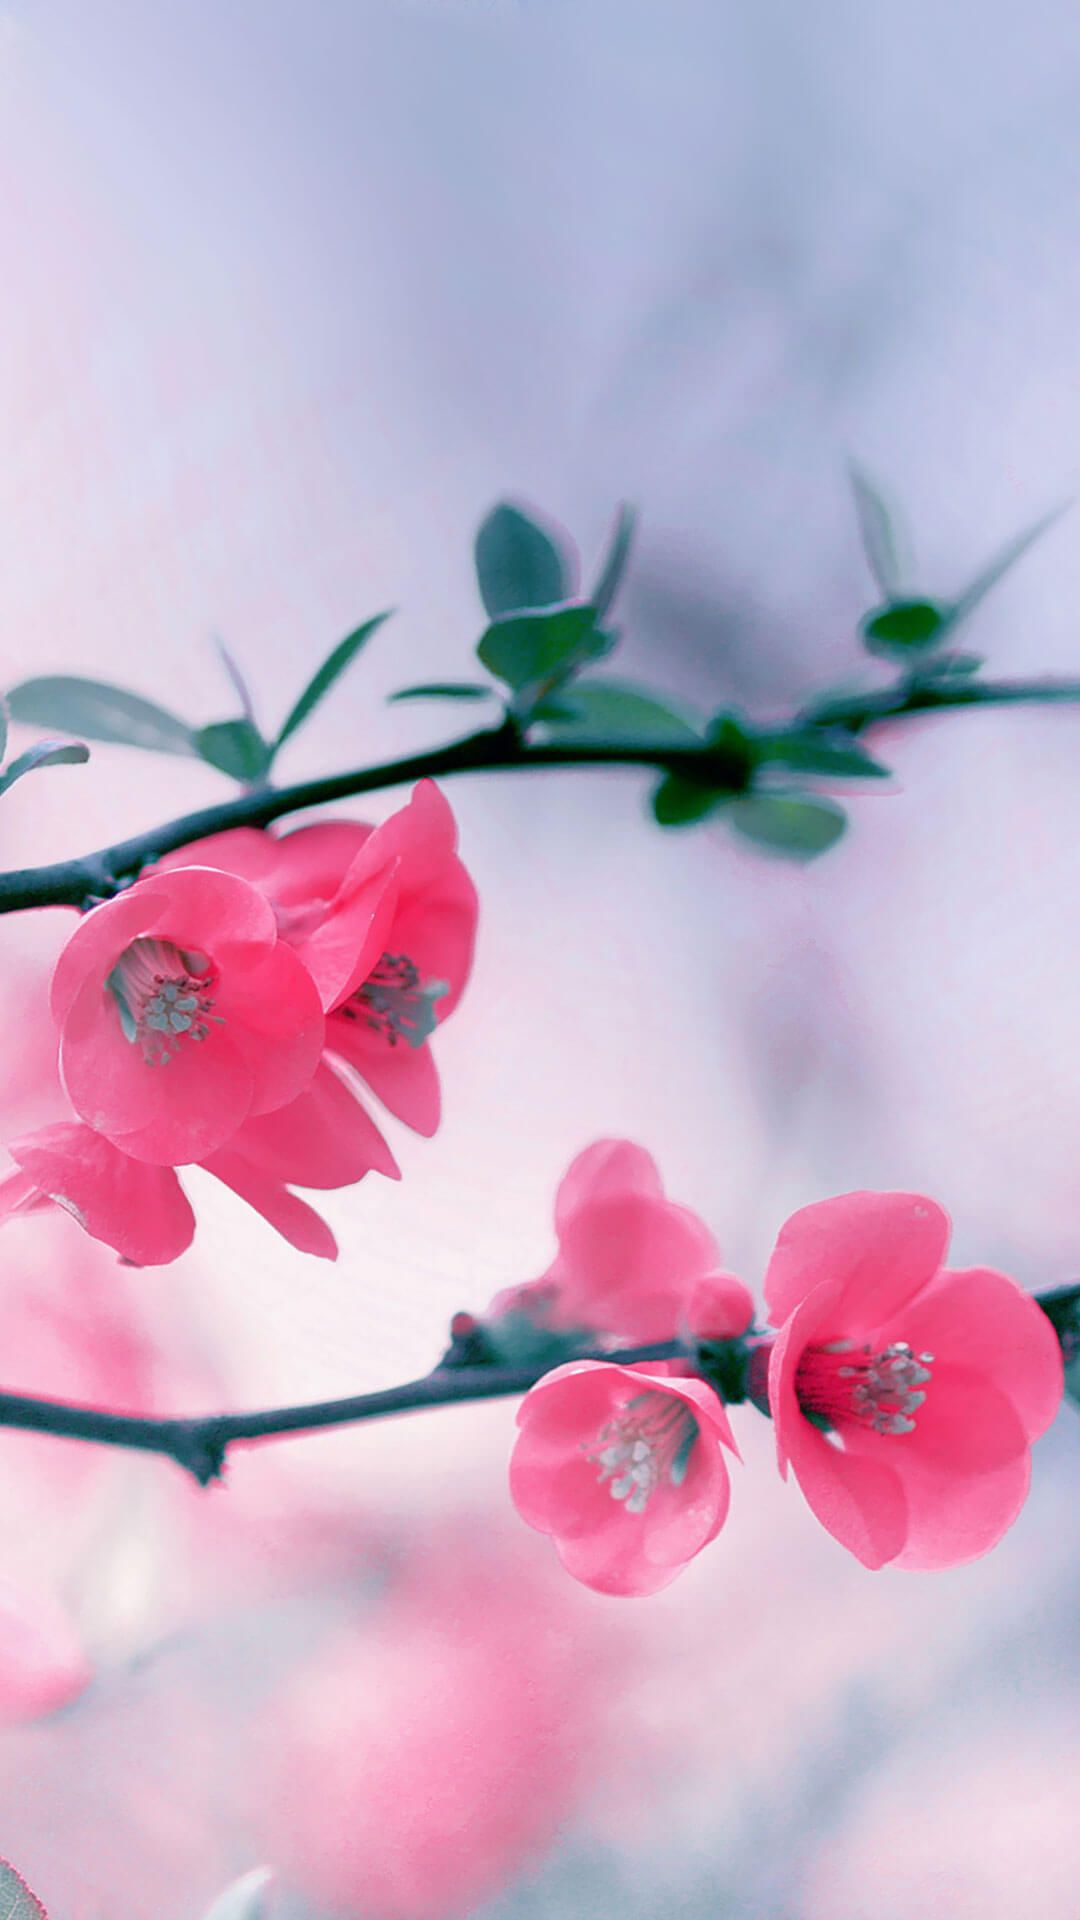 cherry blossom flowers iphone 6 wallpaper hd